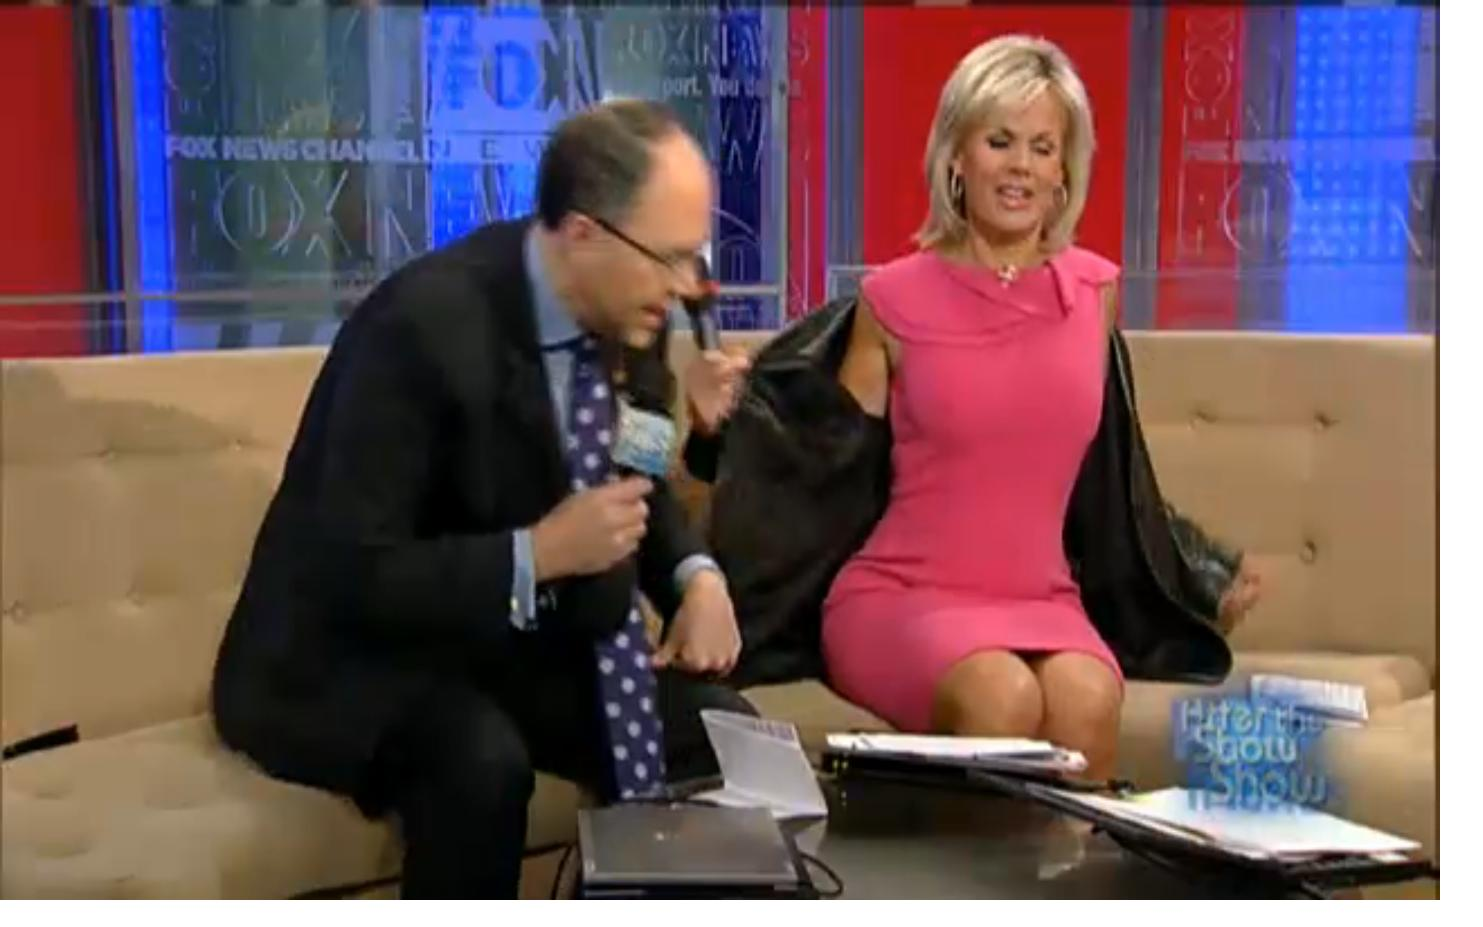 Becky Quick Bikini http://www.tigerdroppings.com/rant/p/29144795/Gretchen-Carlson-Appreciation-Thread-NSFW.aspx